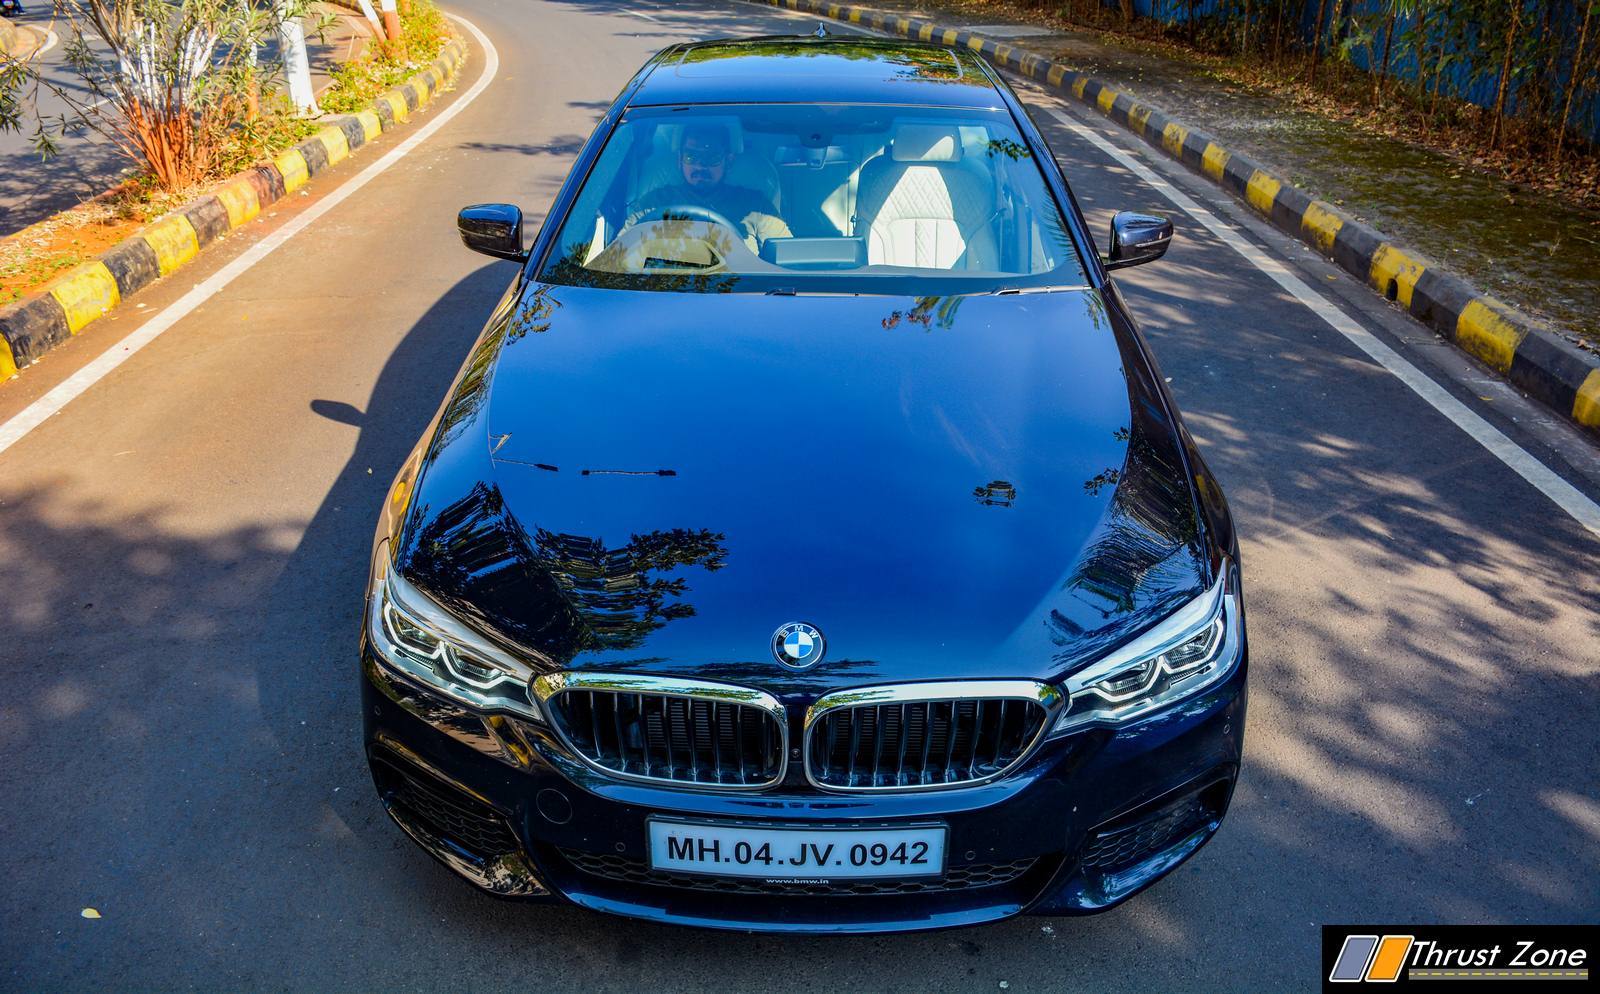 http://www.thrustzone.com/wp-content/uploads/2019/01/2018-BMW-530d-India-Review-16.jpg